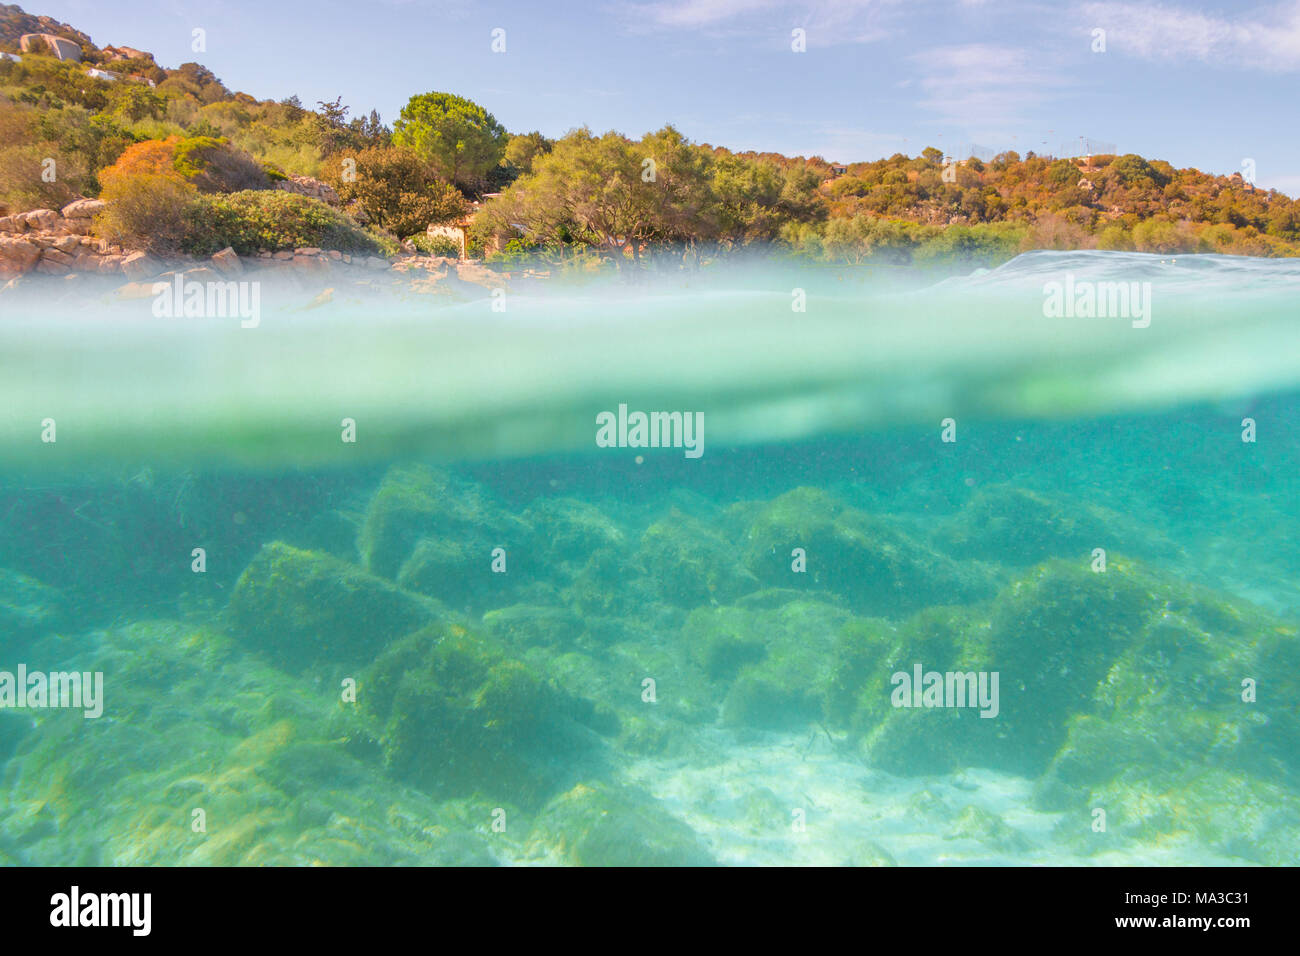 Half underwater photo with the sea bed and trees in arinella (Olbia), Olbia-Tempio province, Sardinia district, Italy Stock Photo